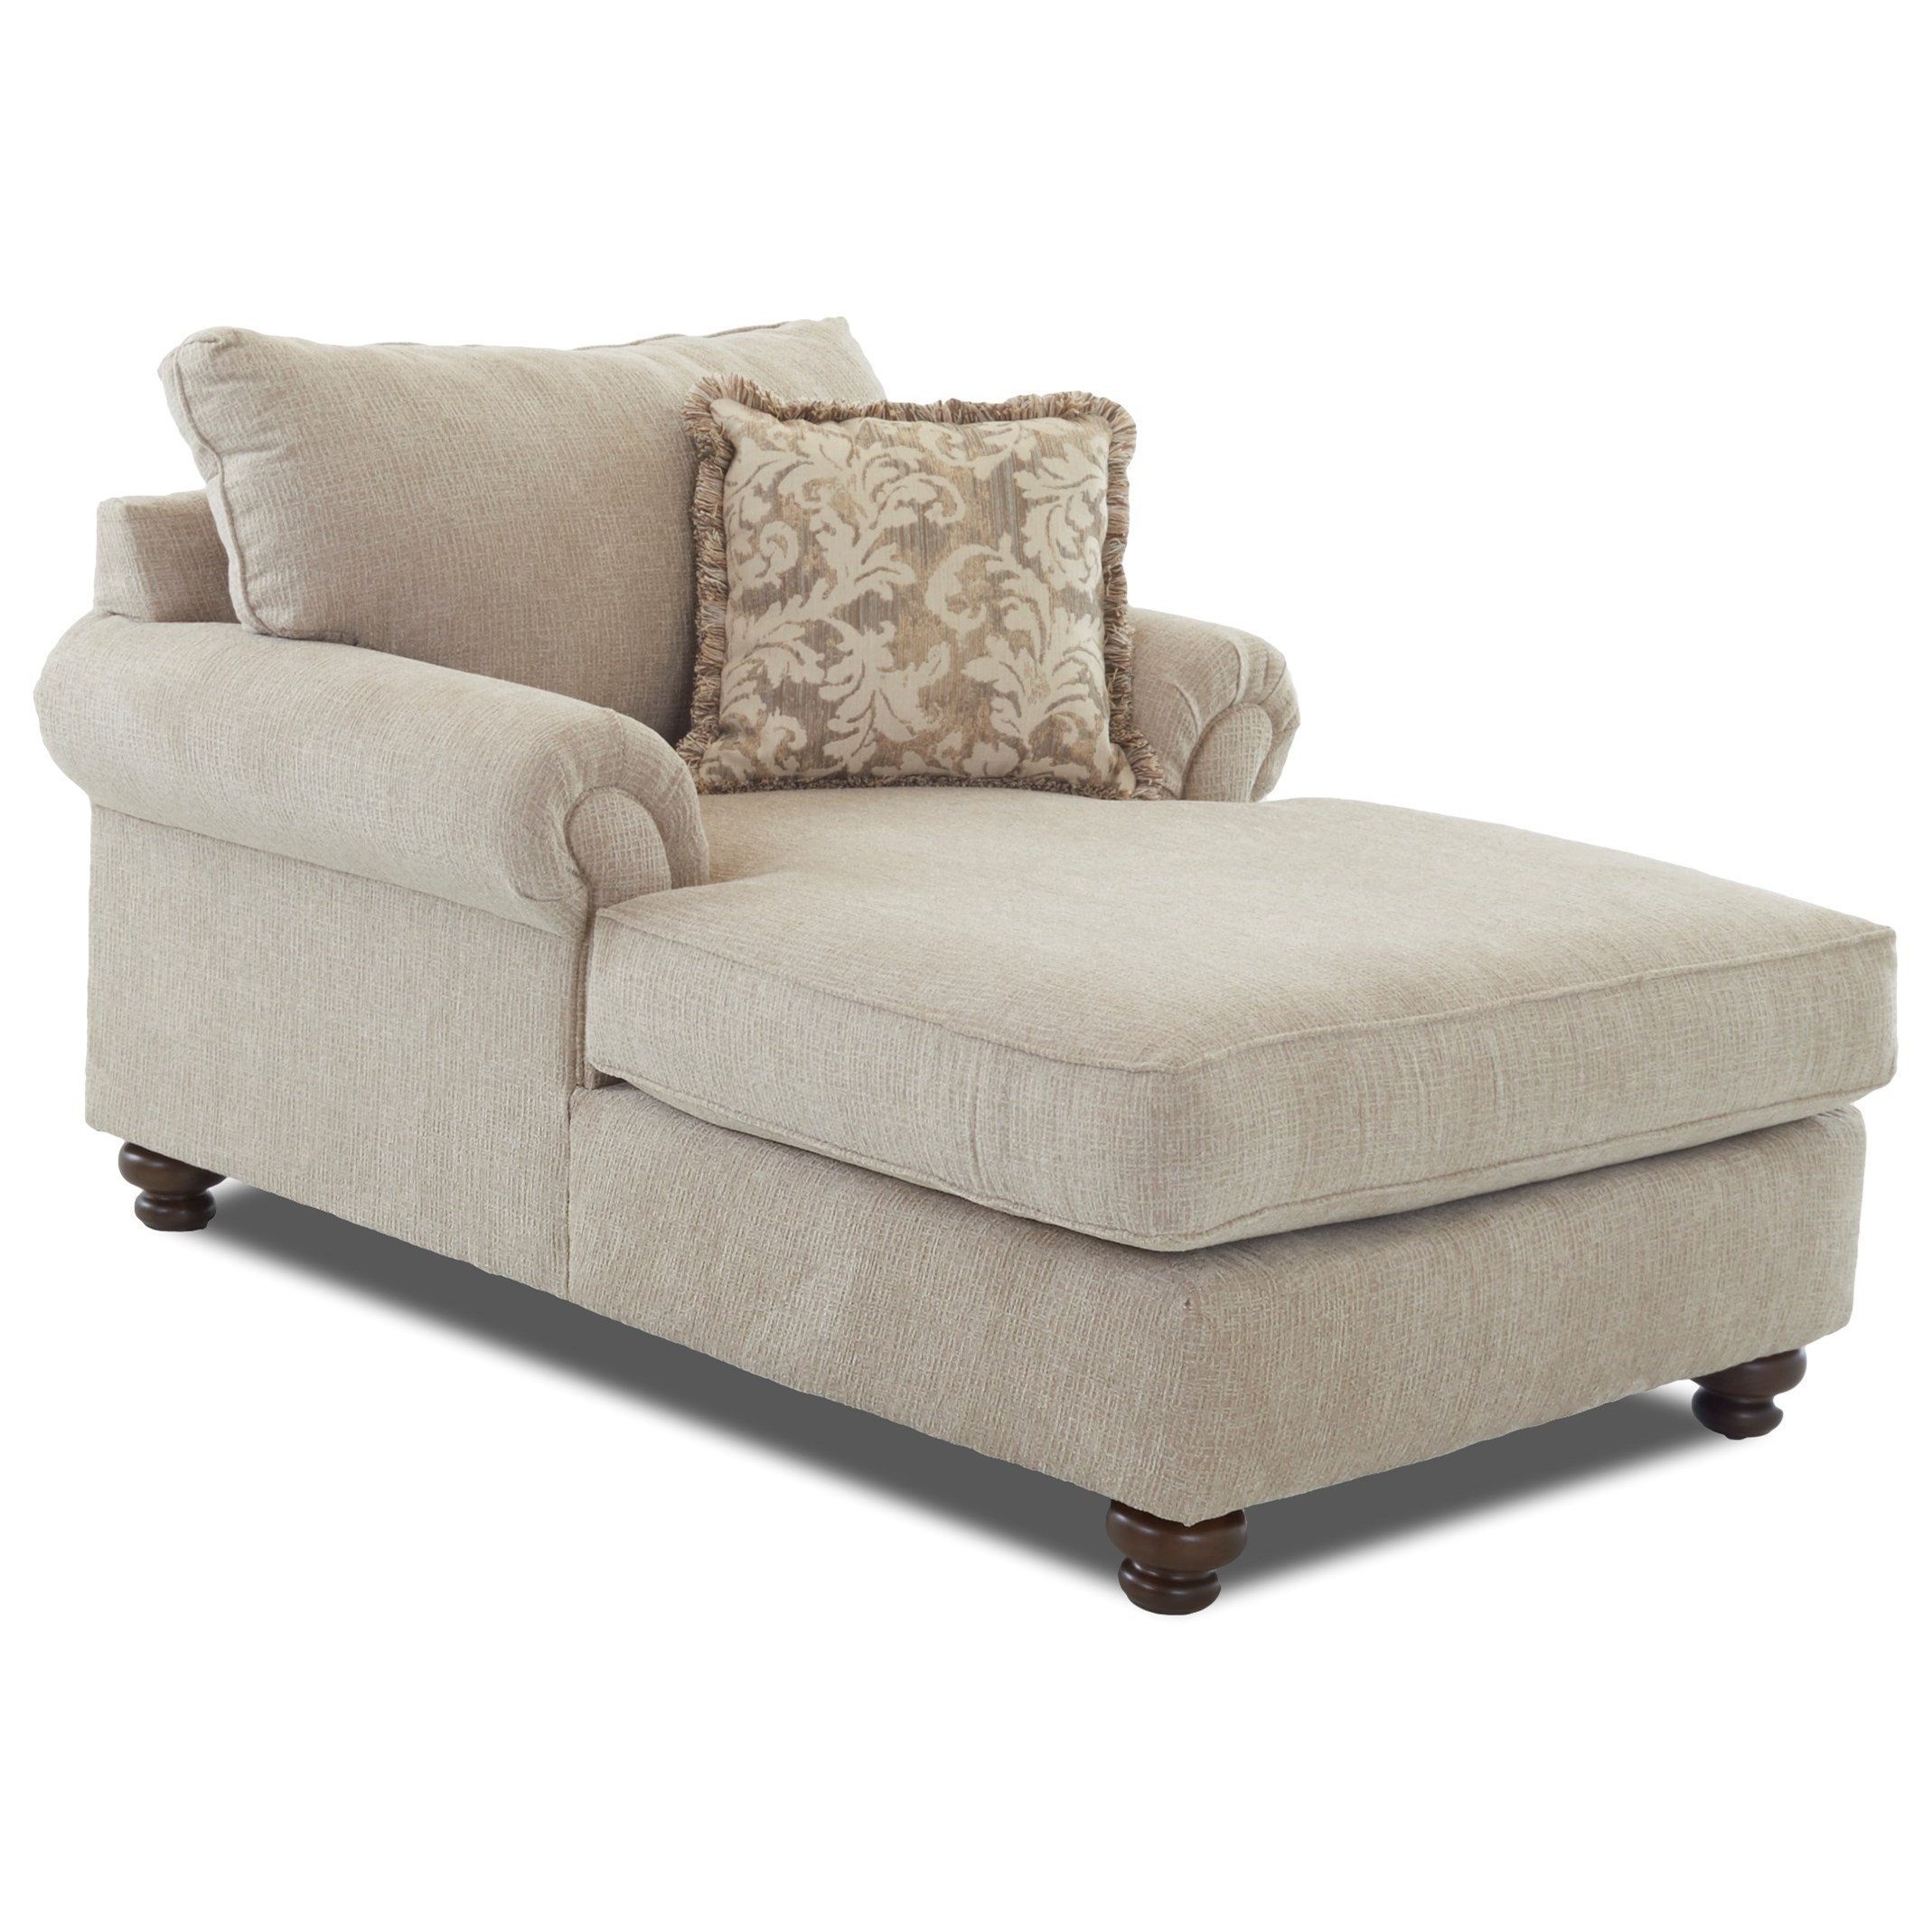 - Klaussner Greenvale Traditional Chaise Lounge Wayside Furniture